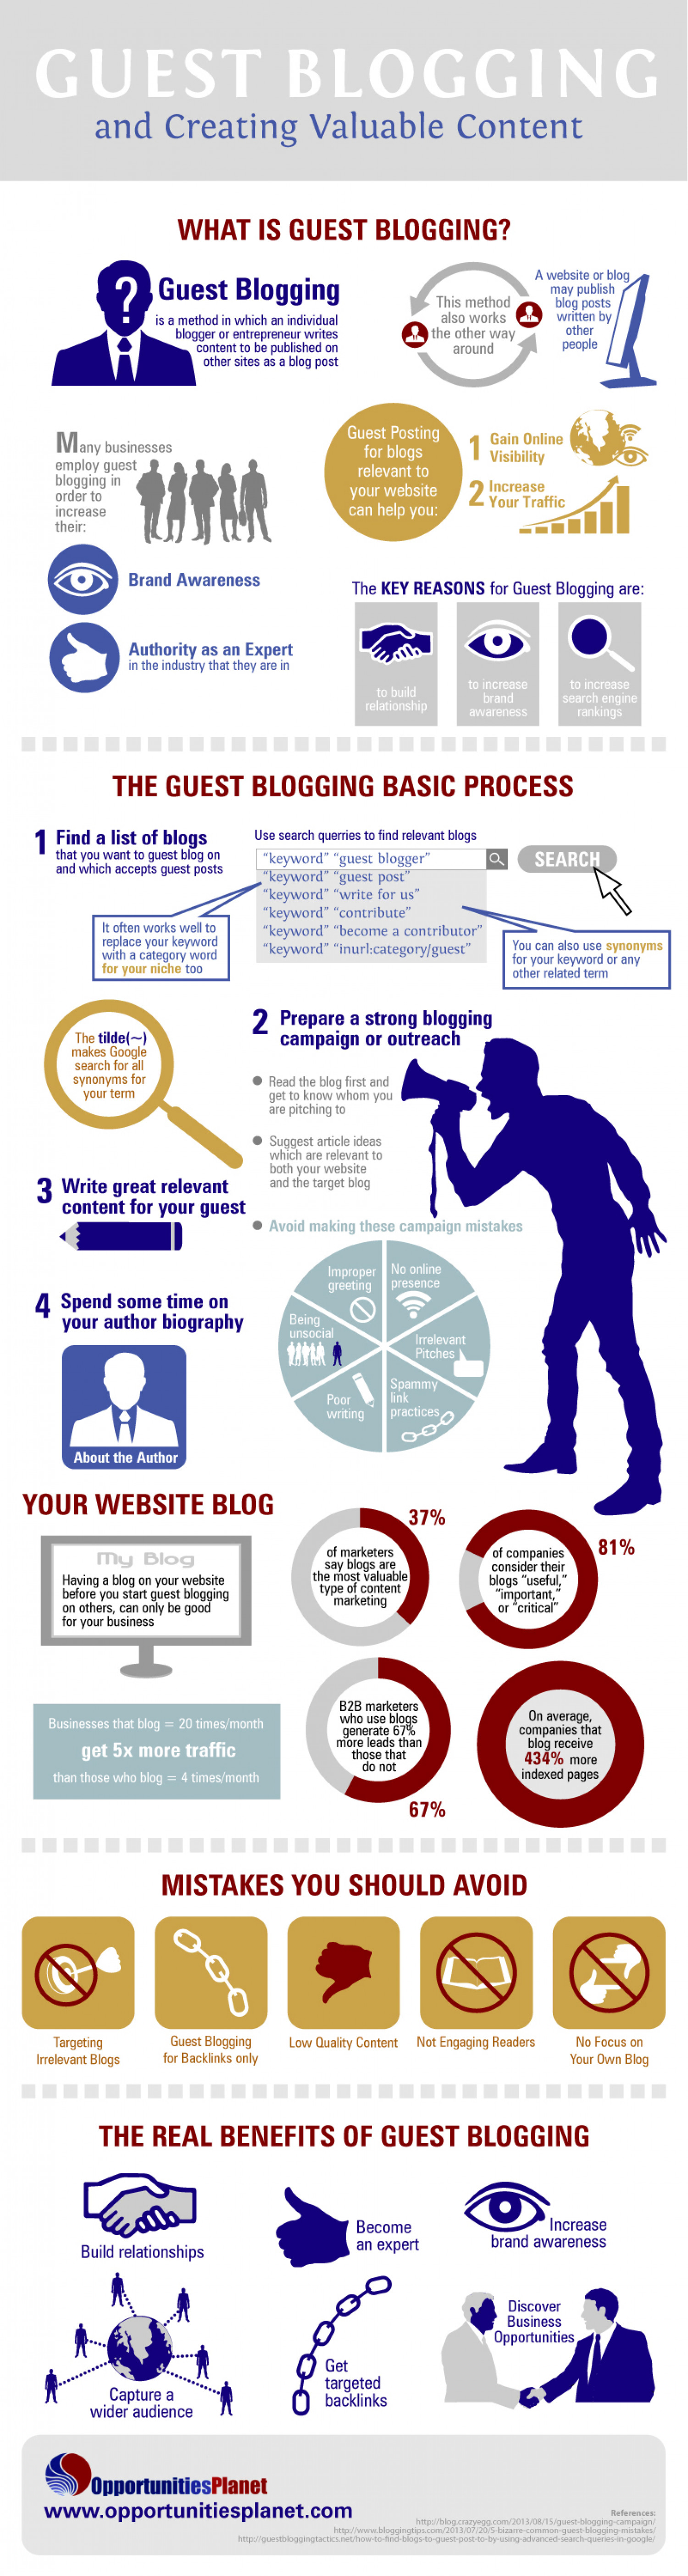 Guest Blogging and Creating Valuable Content Infographic